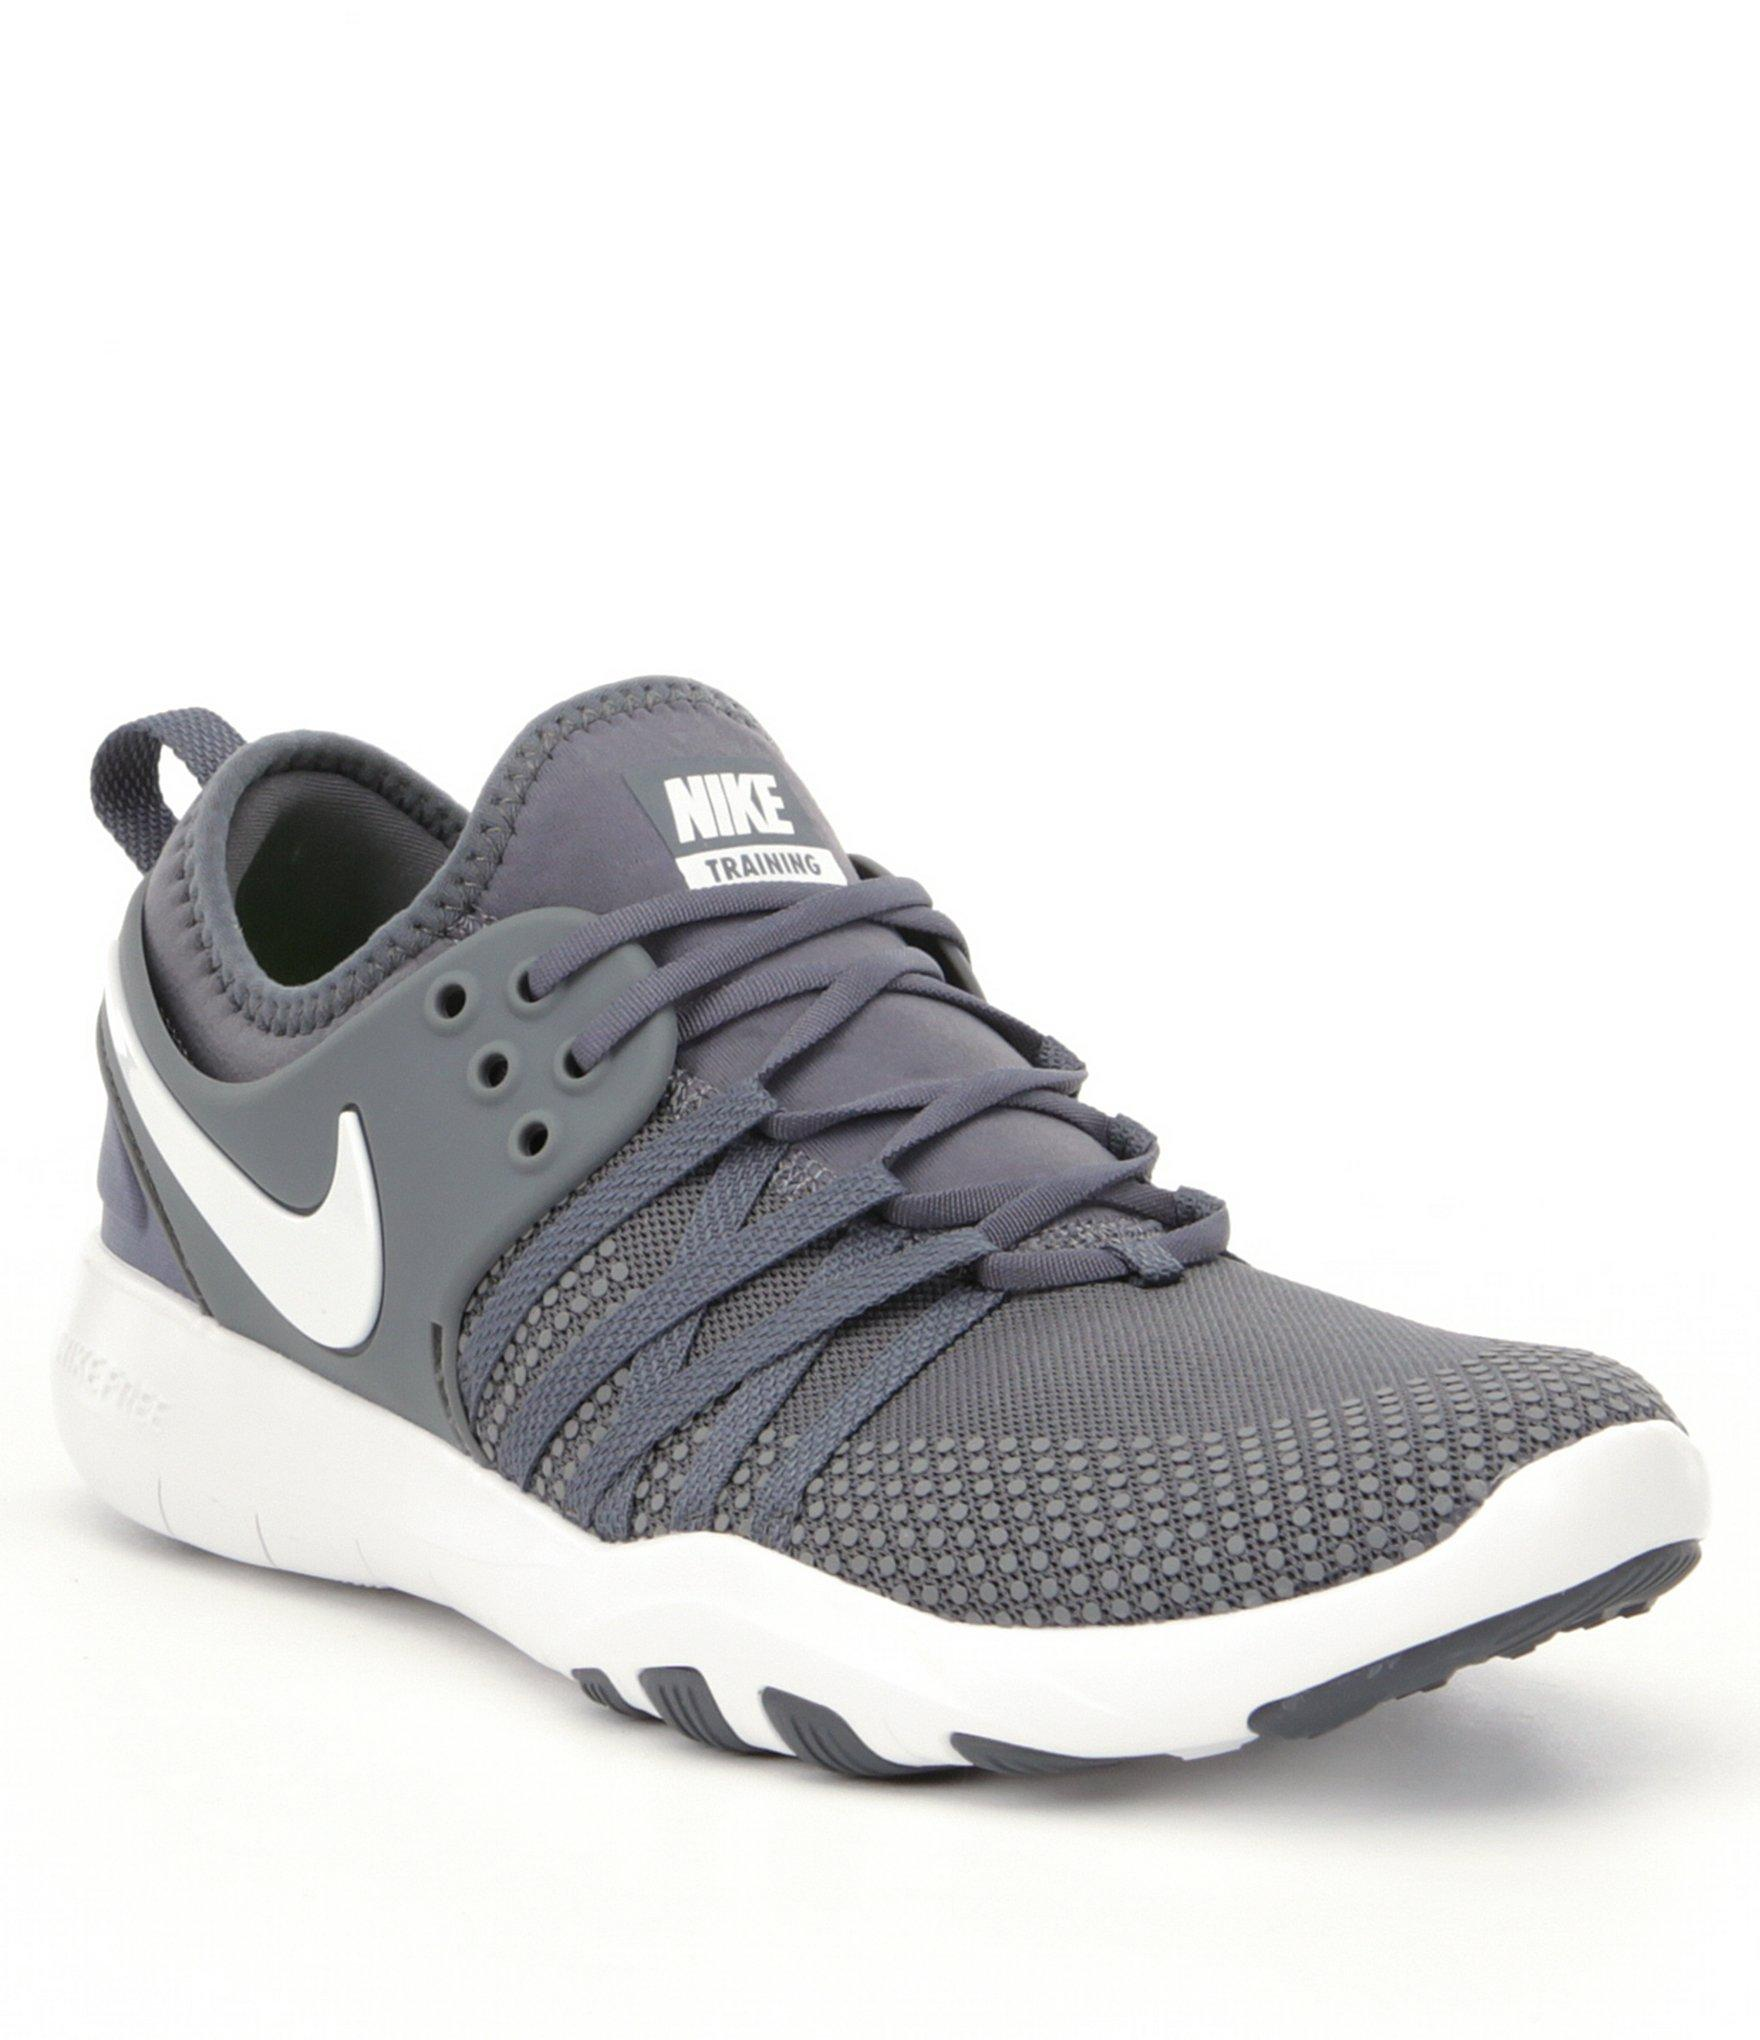 7792f2f3185c8 Lyst - Nike Women ́s Free Tr 7 Training Shoes in Gray